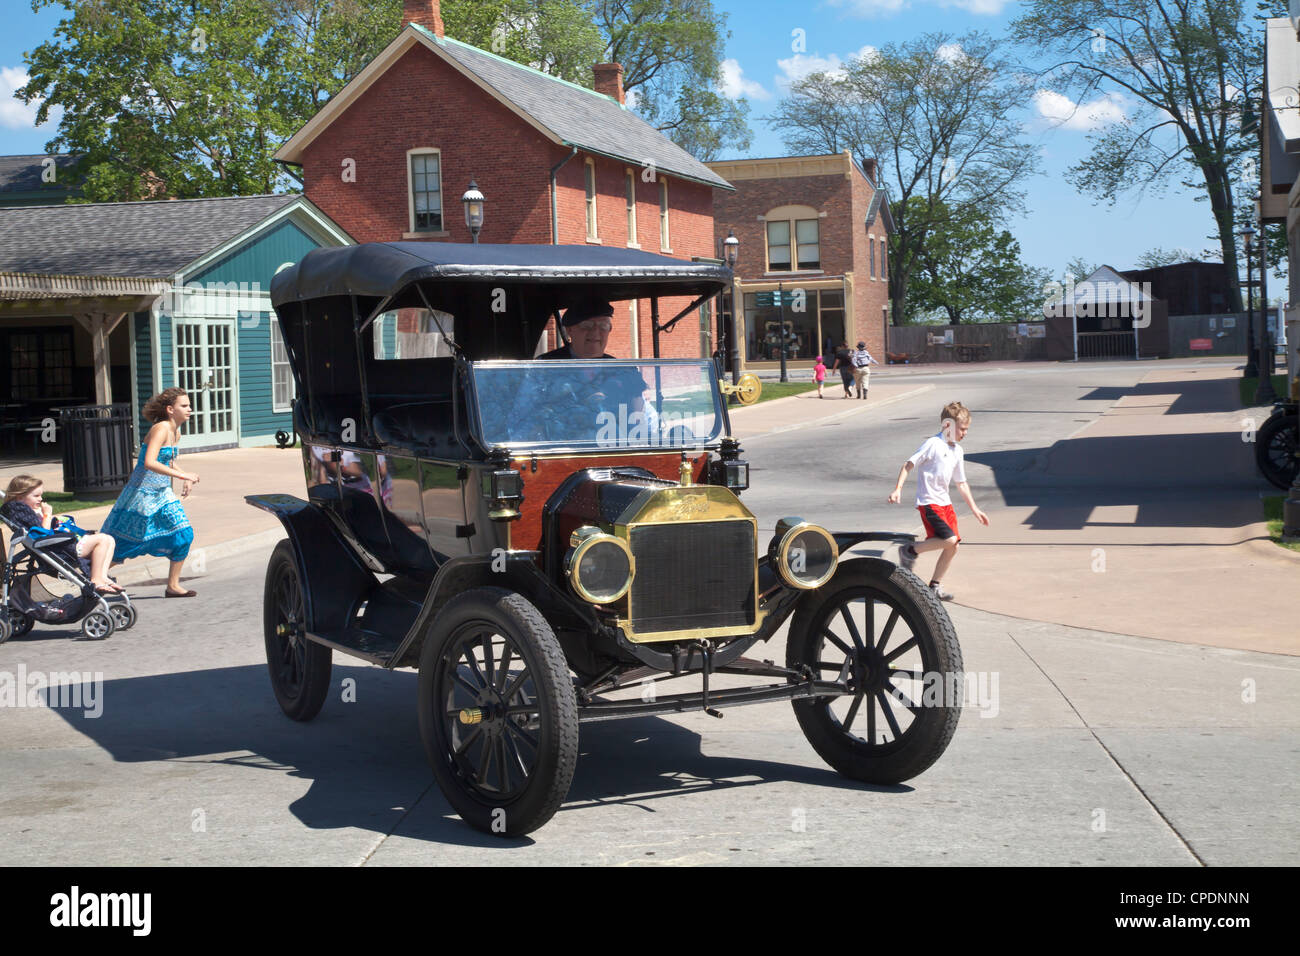 Ford model t at greenfield village dearborn michigan stock image